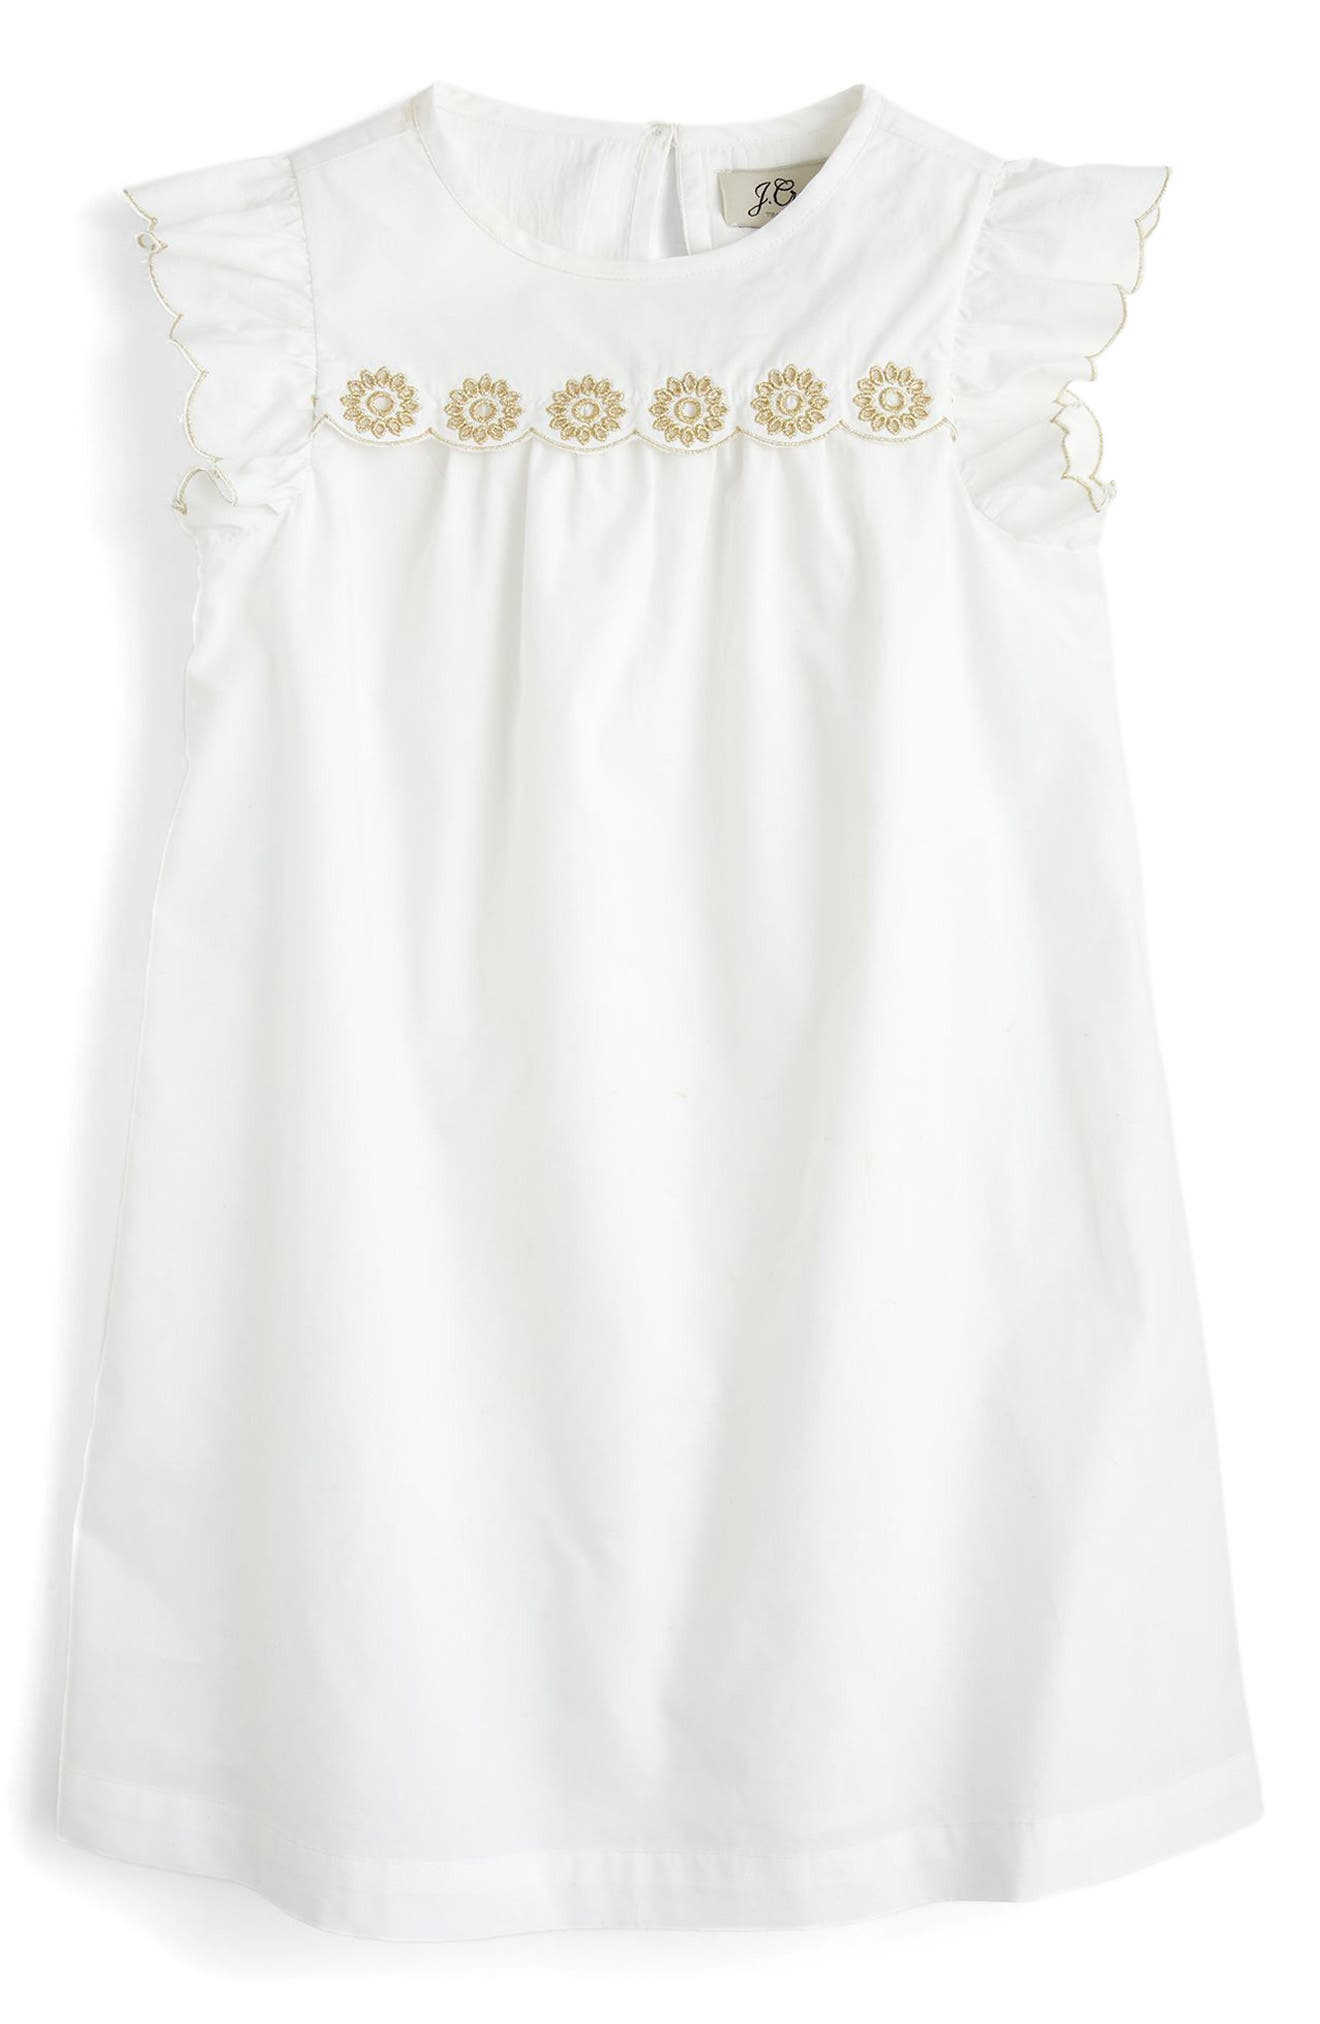 crewcuts by J.Crew Floral Embroidered Shift Dress (Toddler Girls, Little Girls & Big Girls)